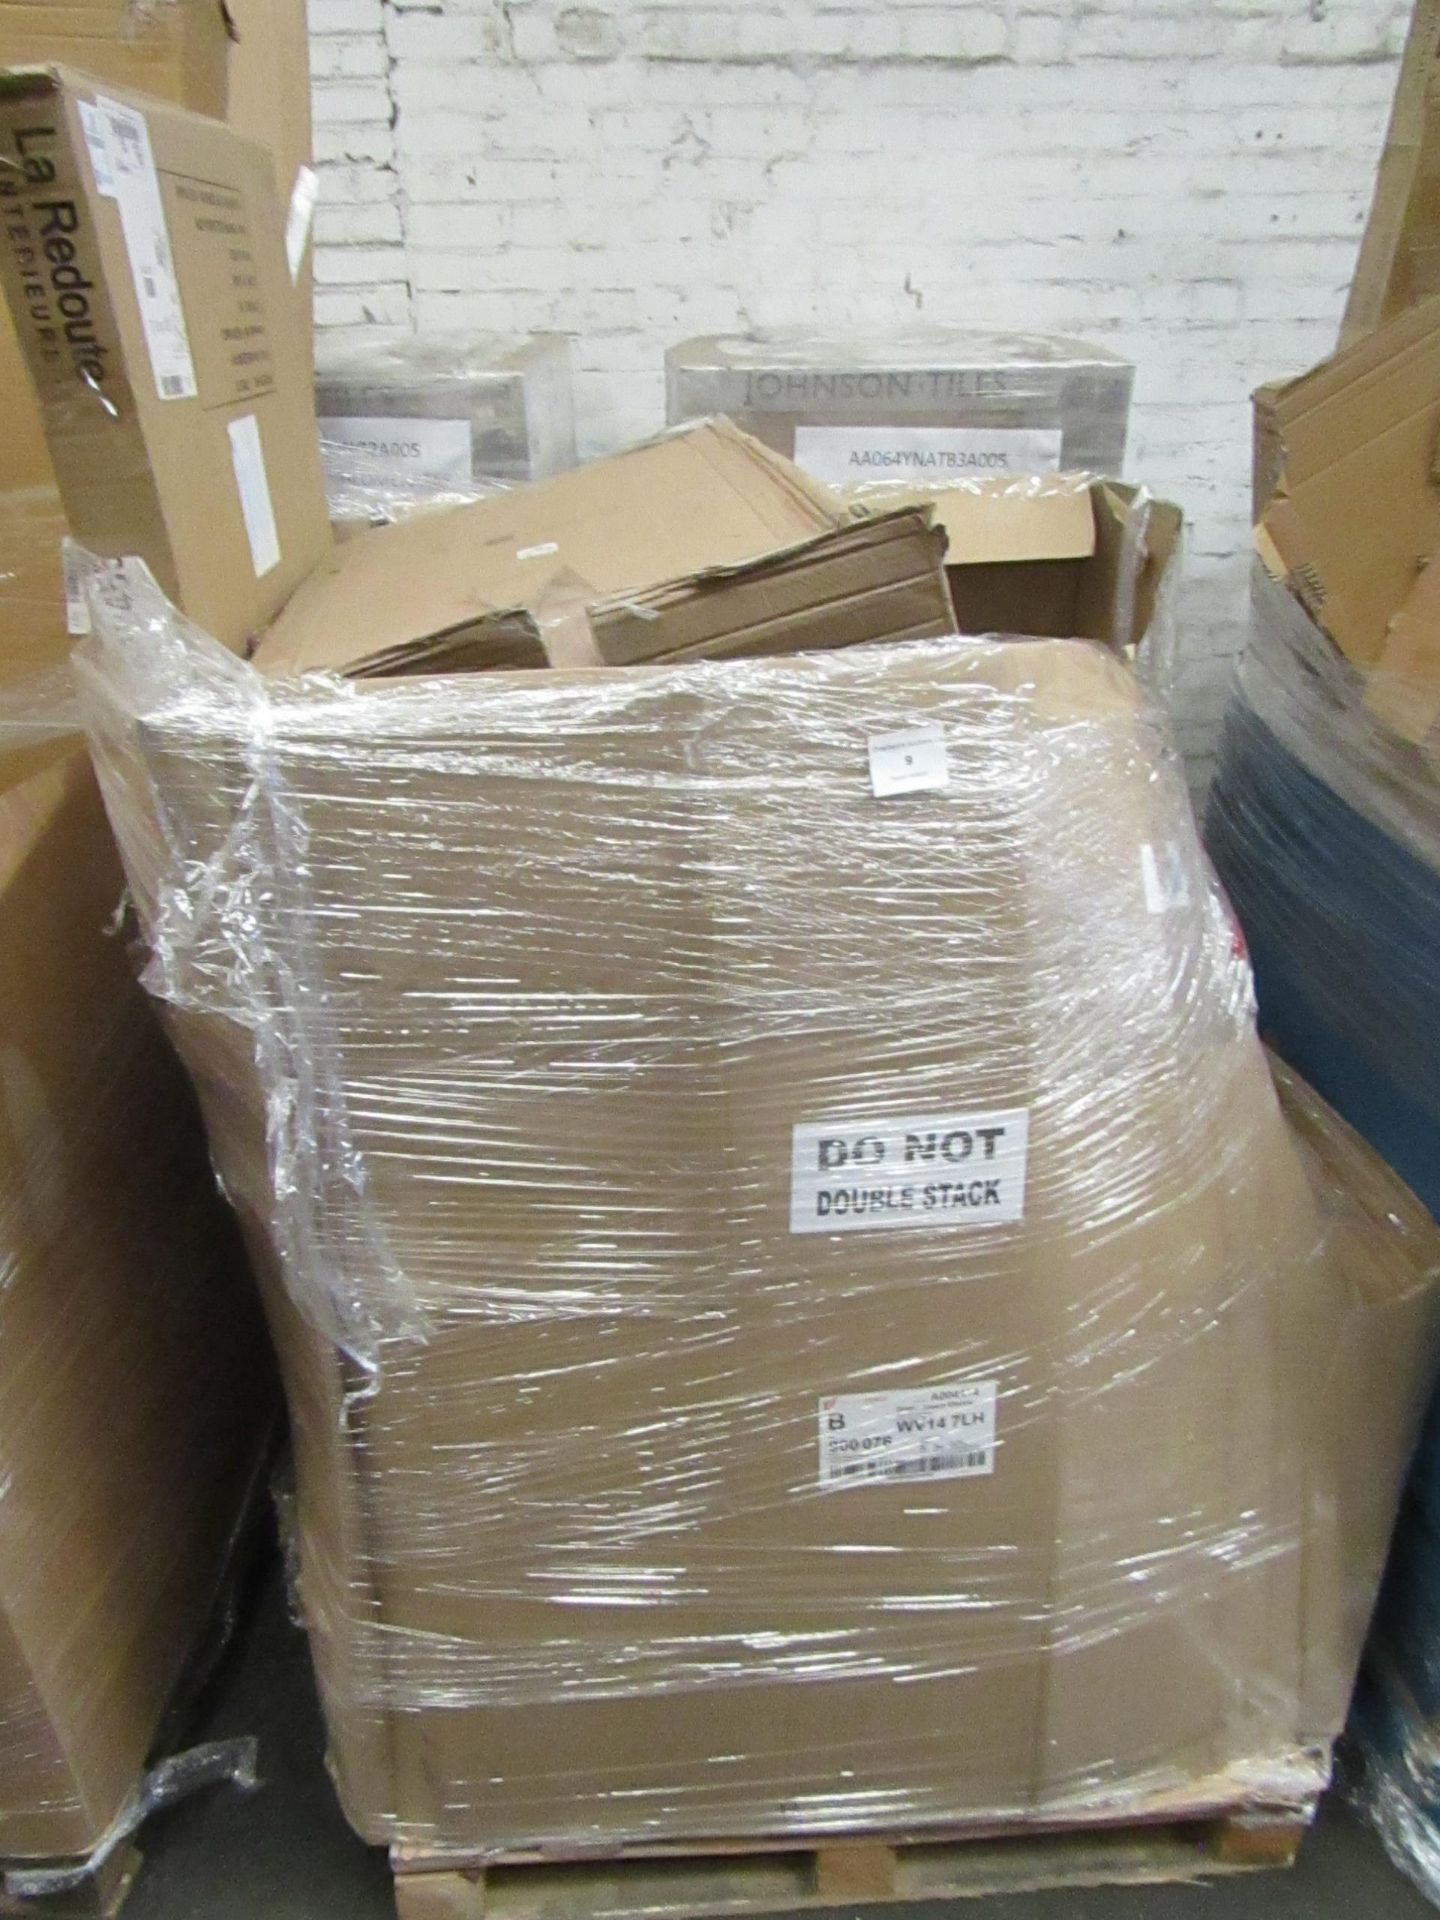   1X   PALLET OF LA REDOUTE B.E.R FURNITURE, UNMANIFESTED, TYPICAL ITEMS INCLUDE SIDE BOARDS AND